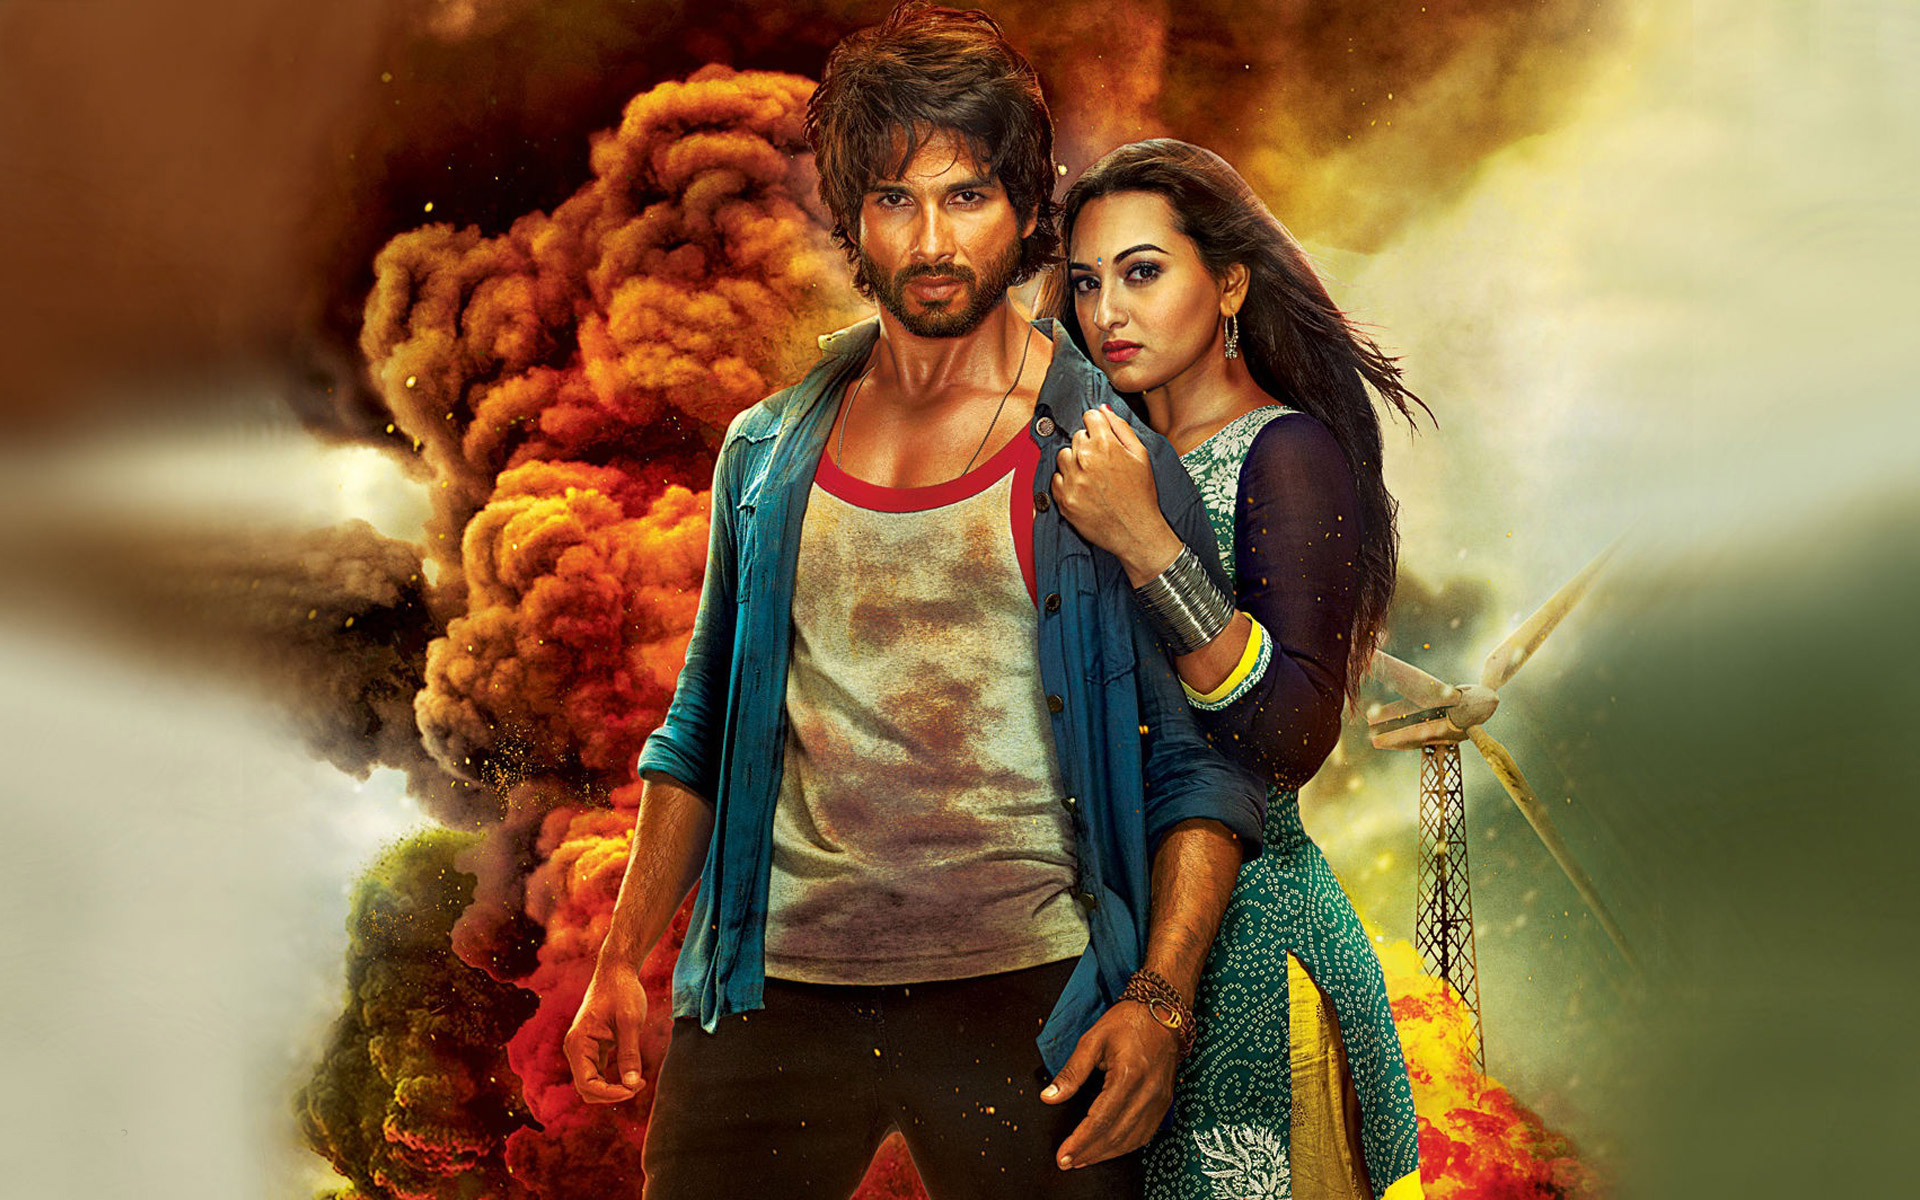 The Shahid-Sonakshi starrer has been ripped apart by critics